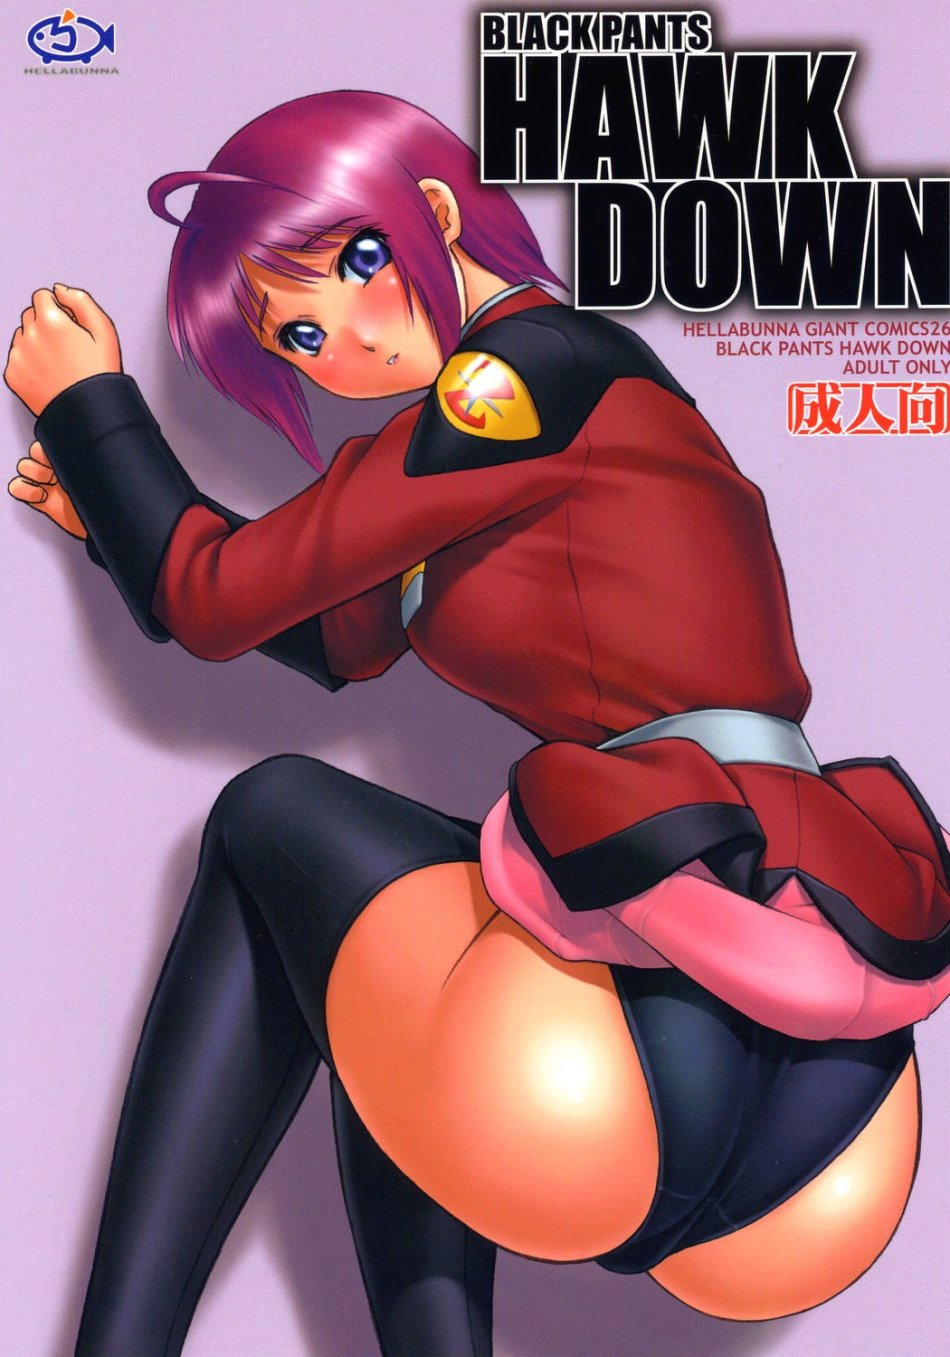 Porn Comics - Black Pants Hack Down- Gundam Seed Destiny porn comics 8 muses